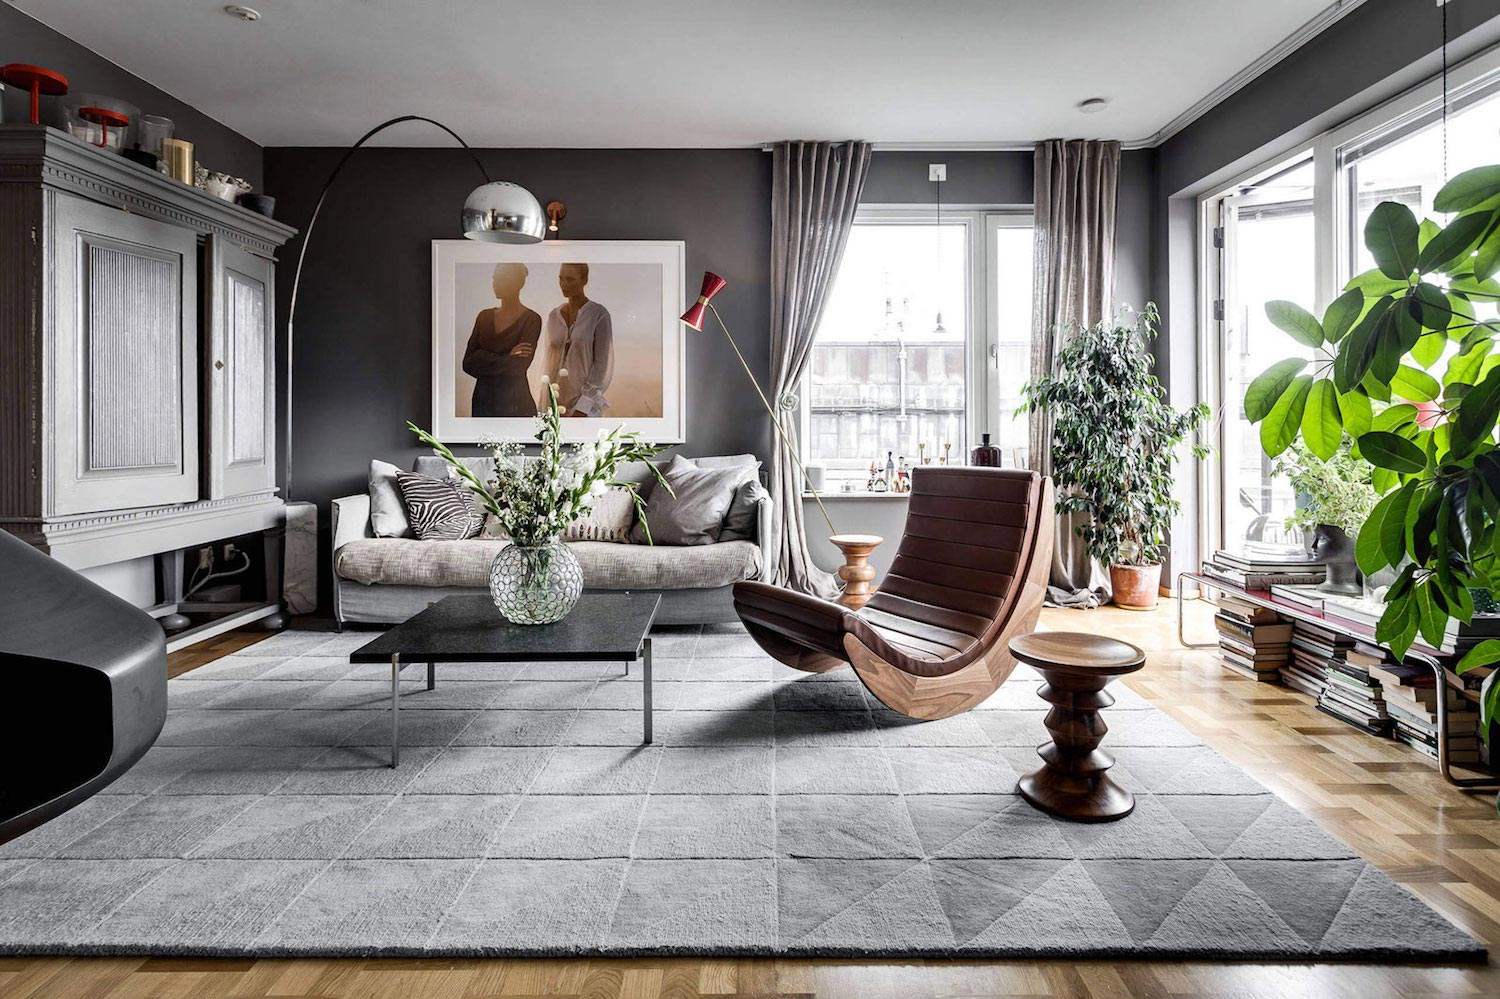 Sehlstedtsgatan 7 a stylish penthouse on two floors in stockholm sweden caandesign architecture and home design blog